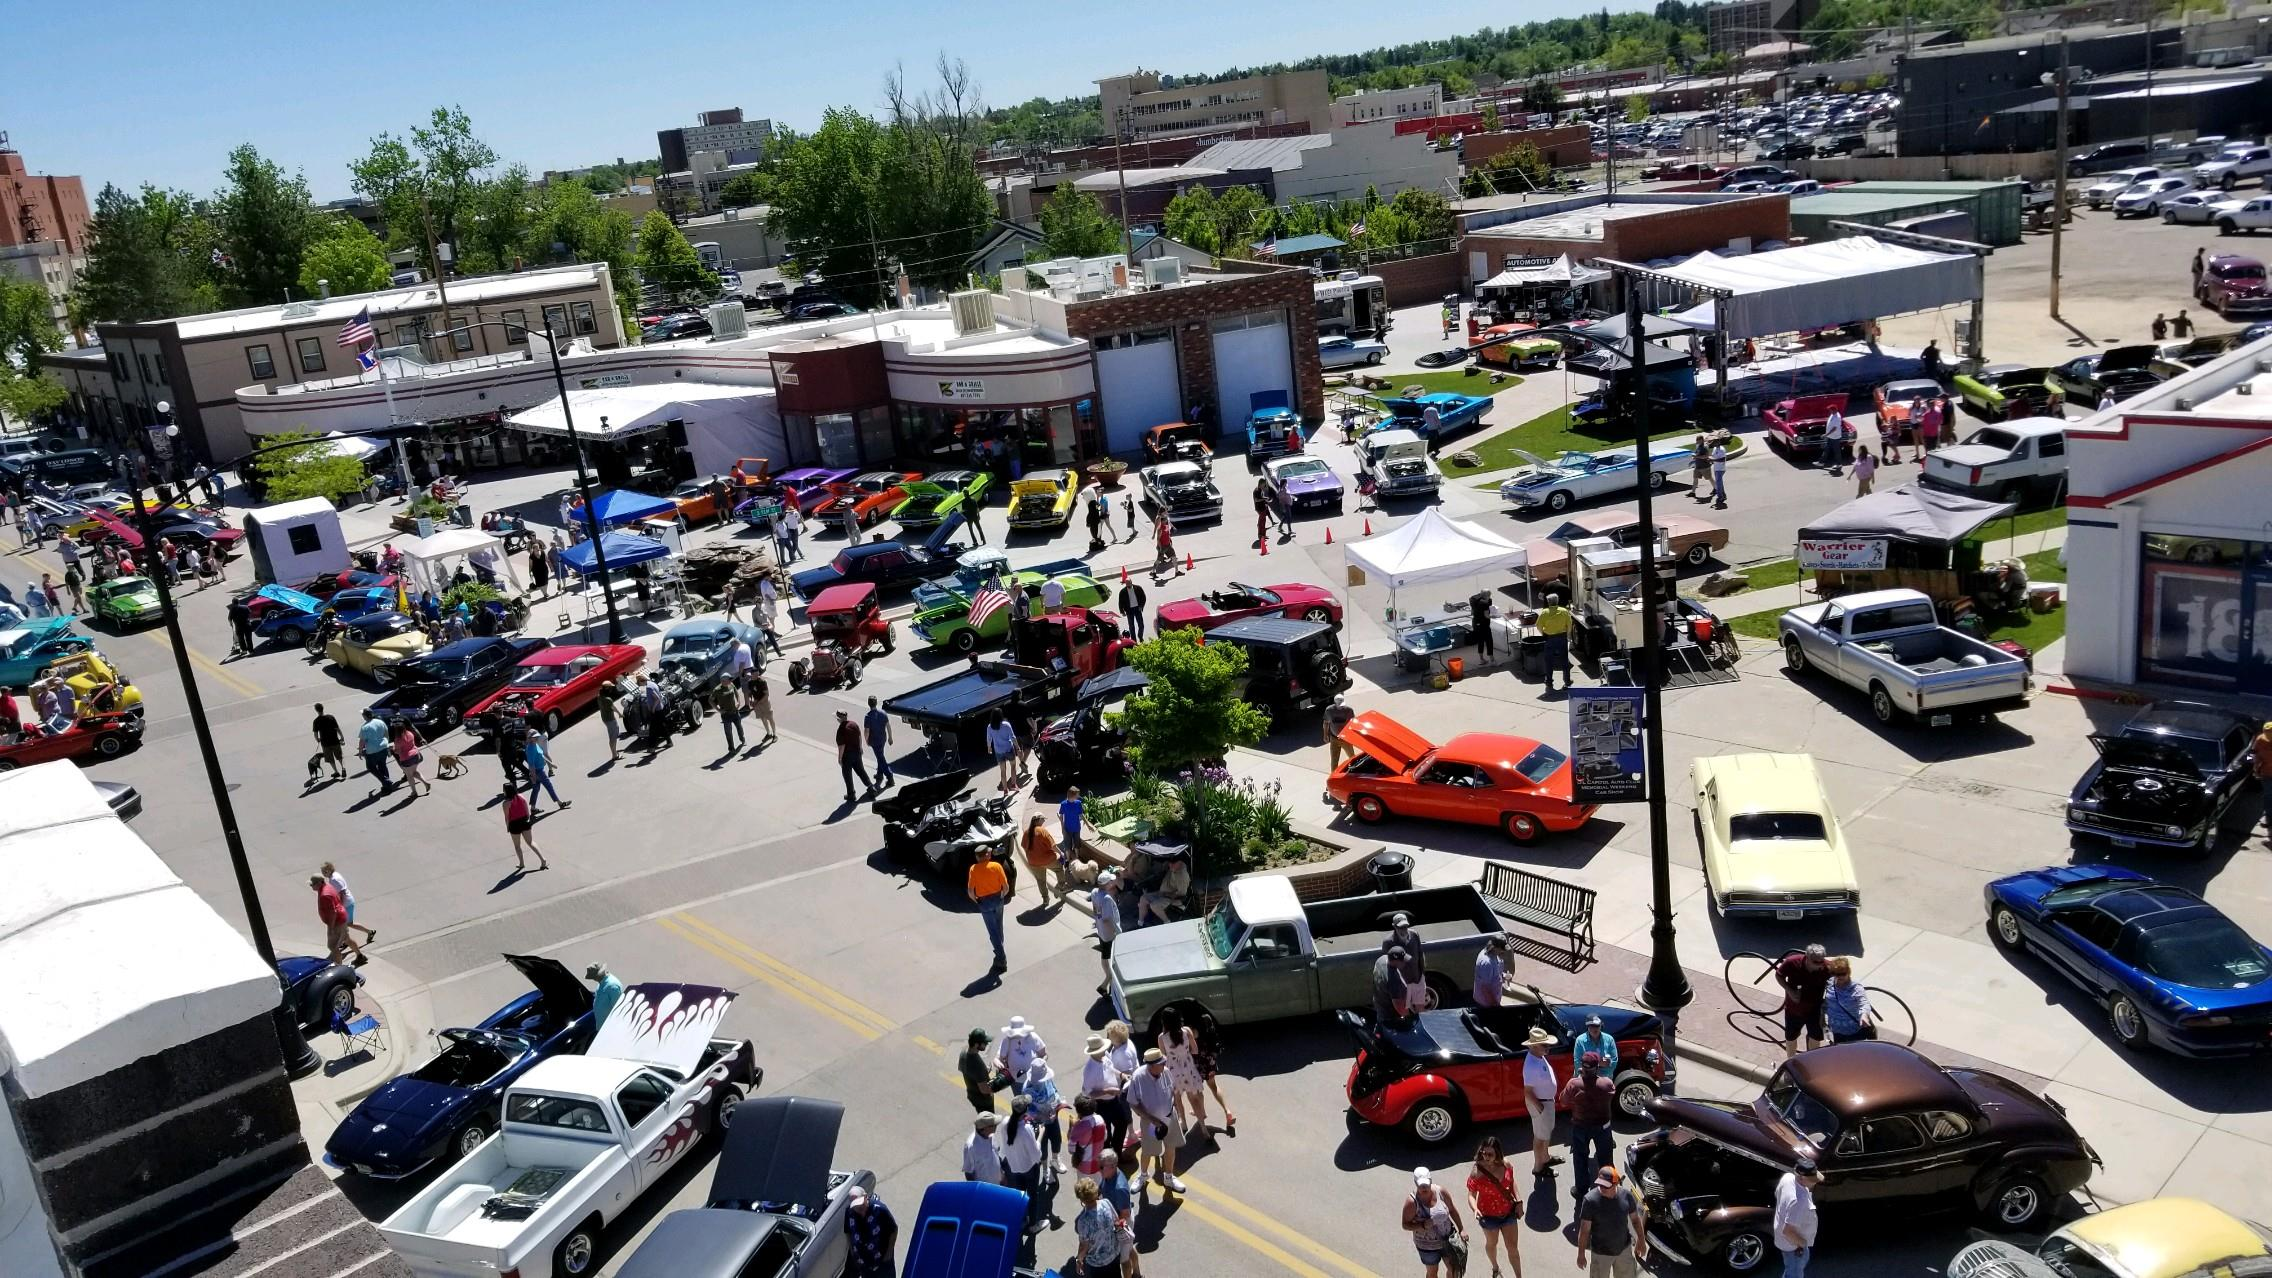 Town street full of cars and trucks for a car show